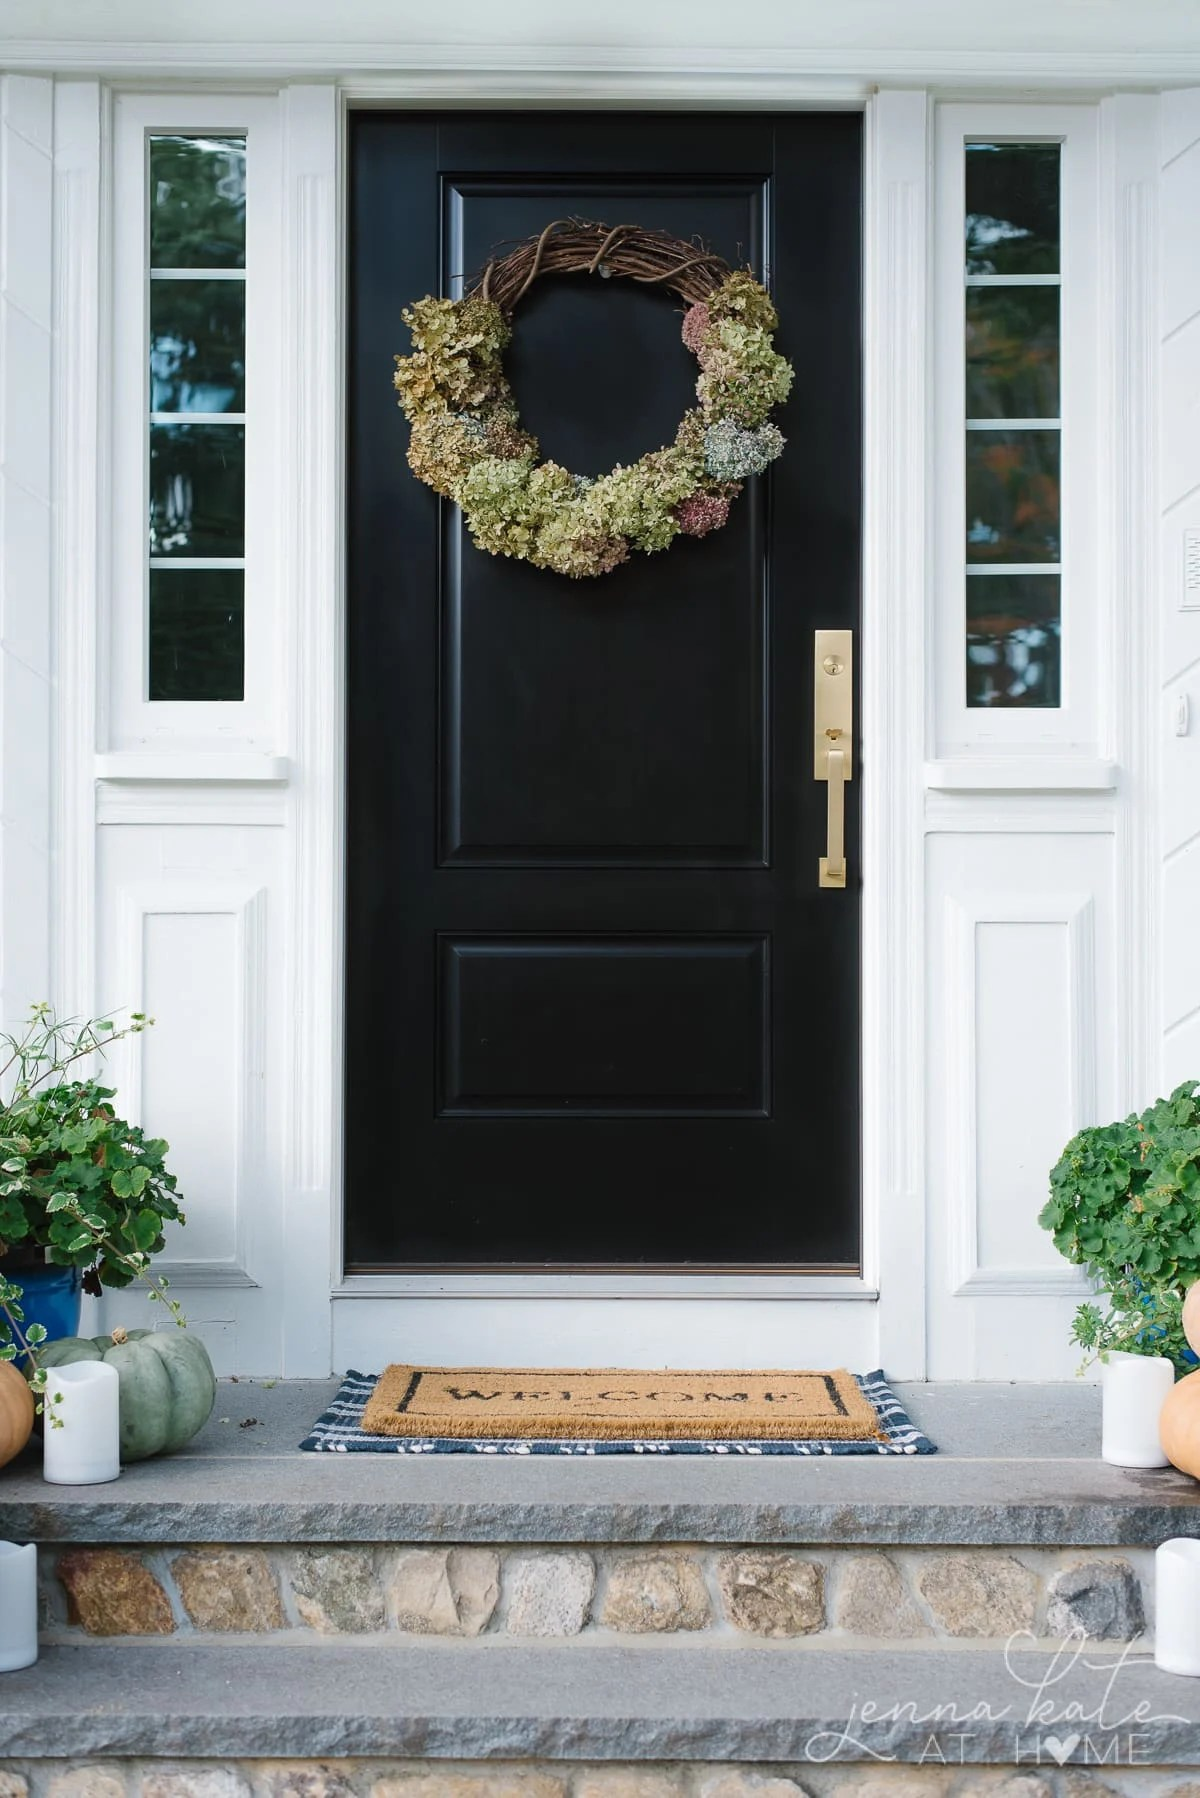 Hydrangea wreath hanging on the front door for fall decor